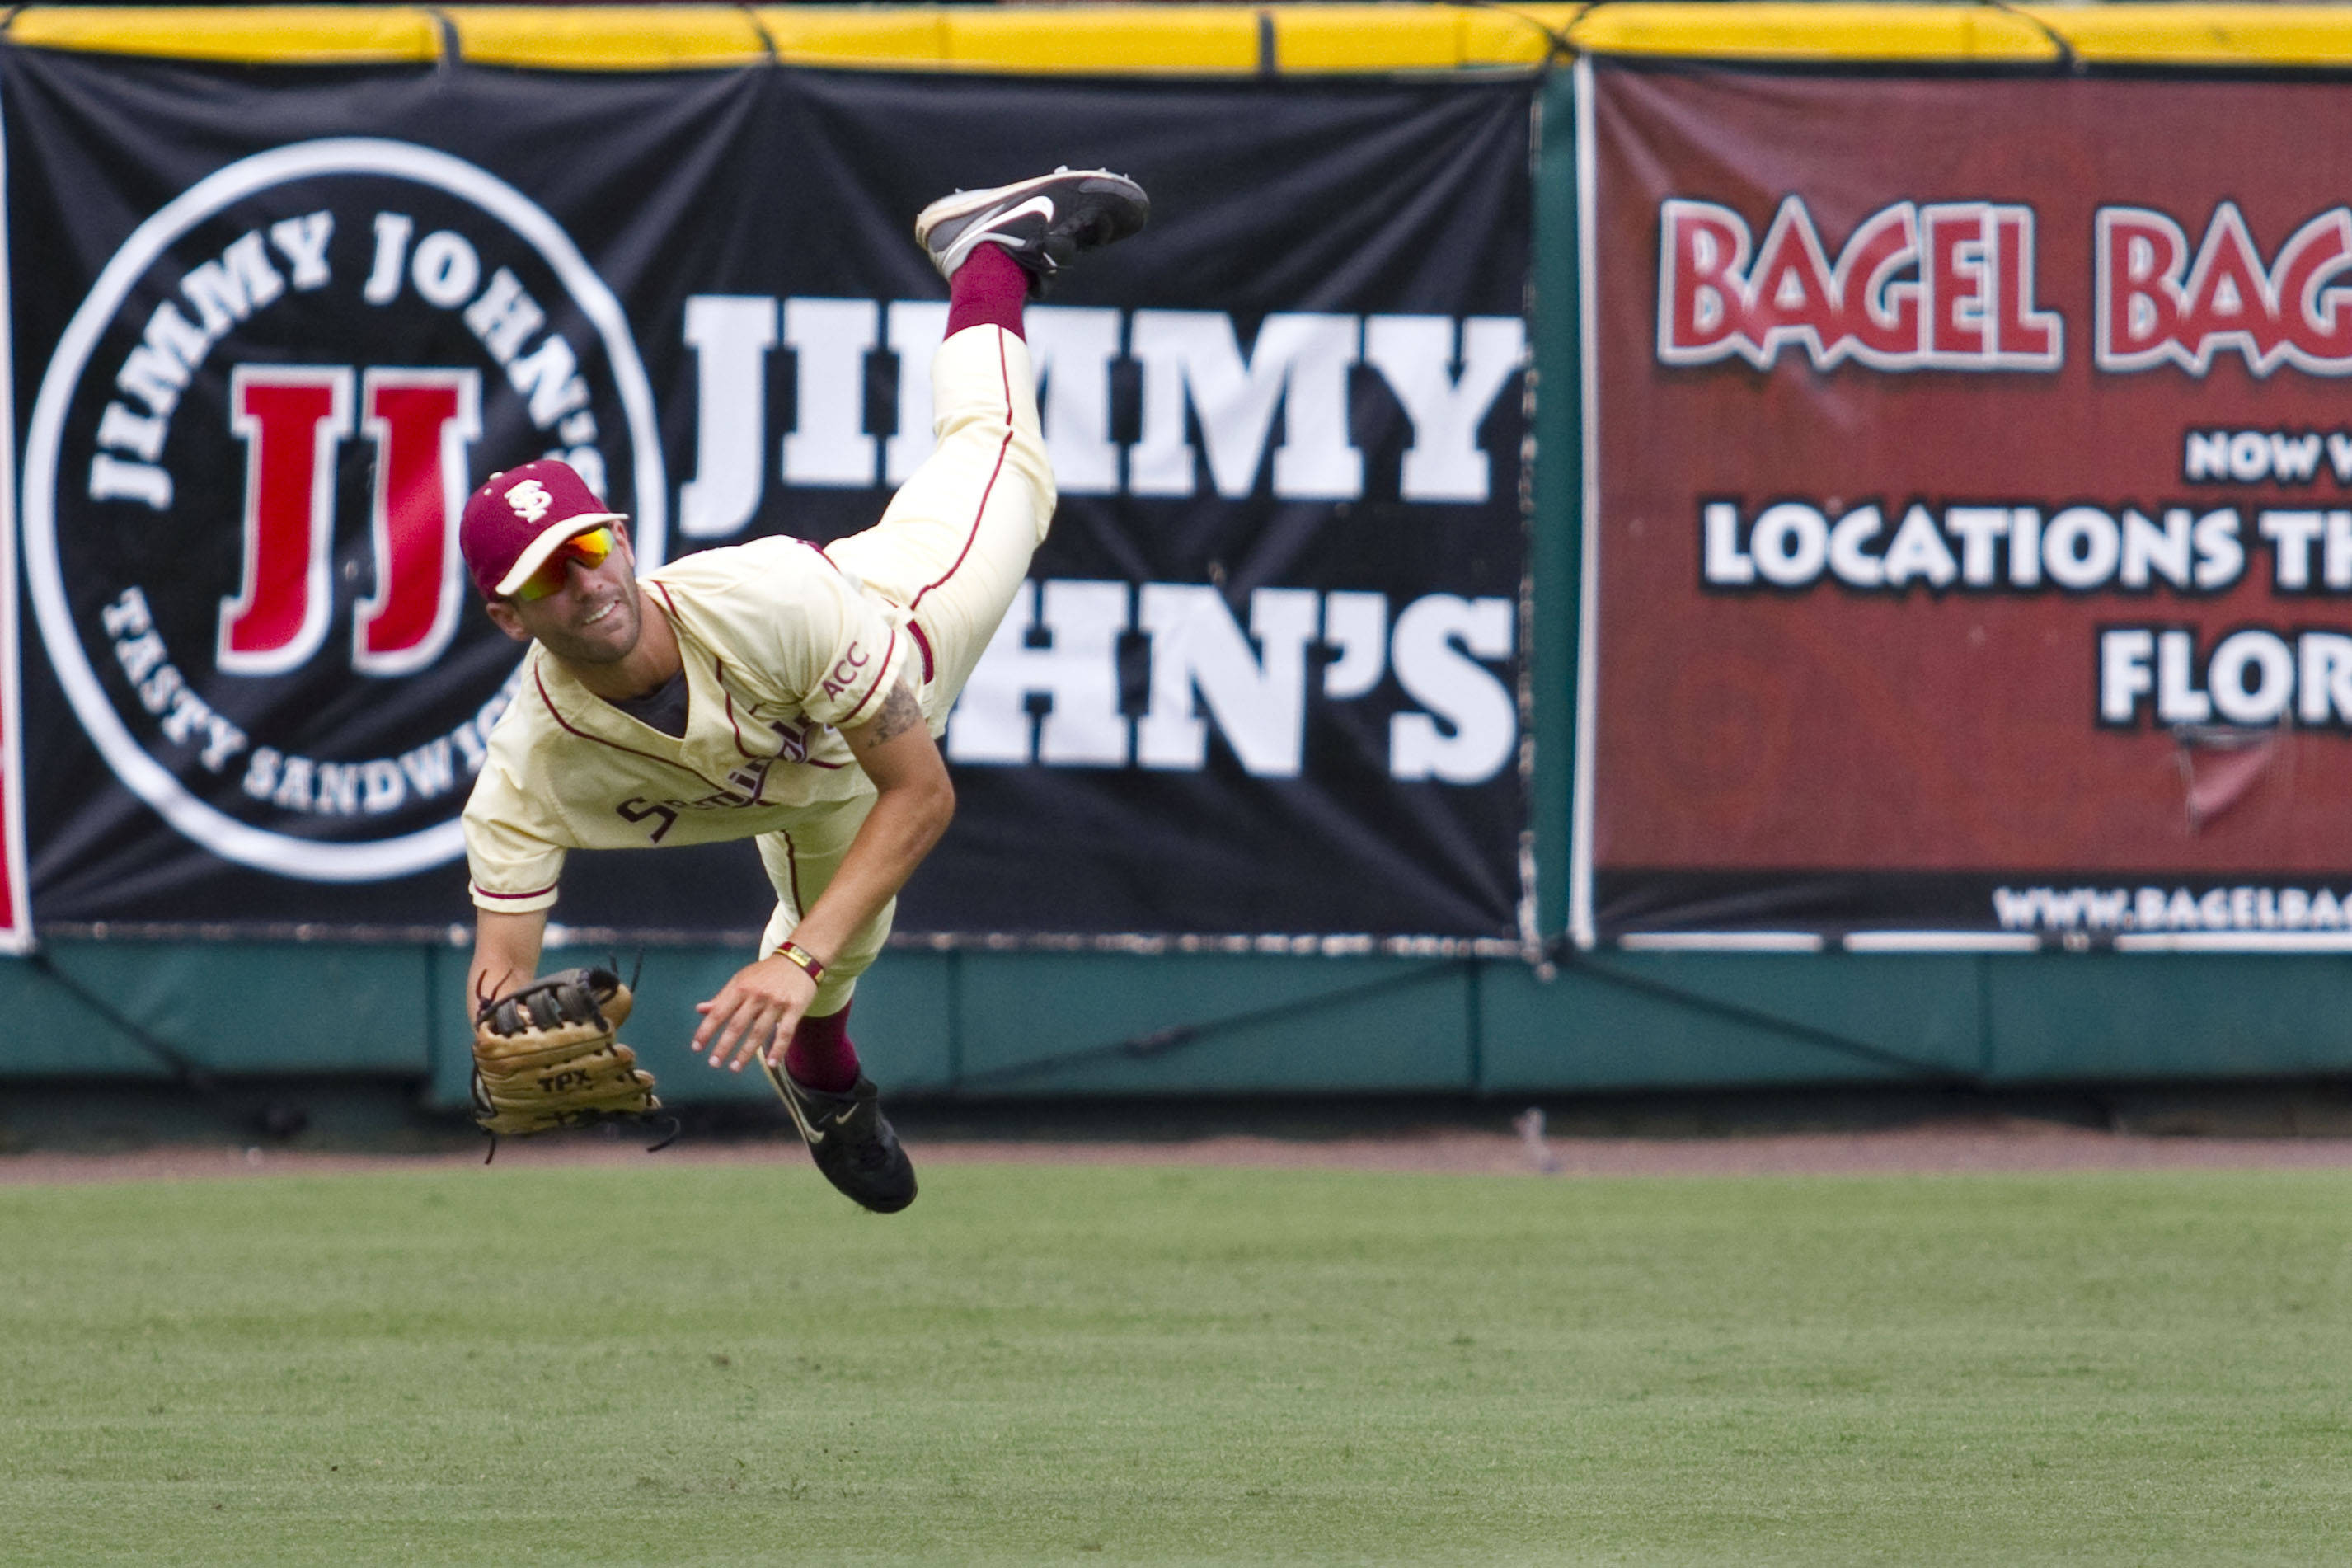 Ohmed Danesh (2) falls after making a lunging throw to the infield in the 7th inning.